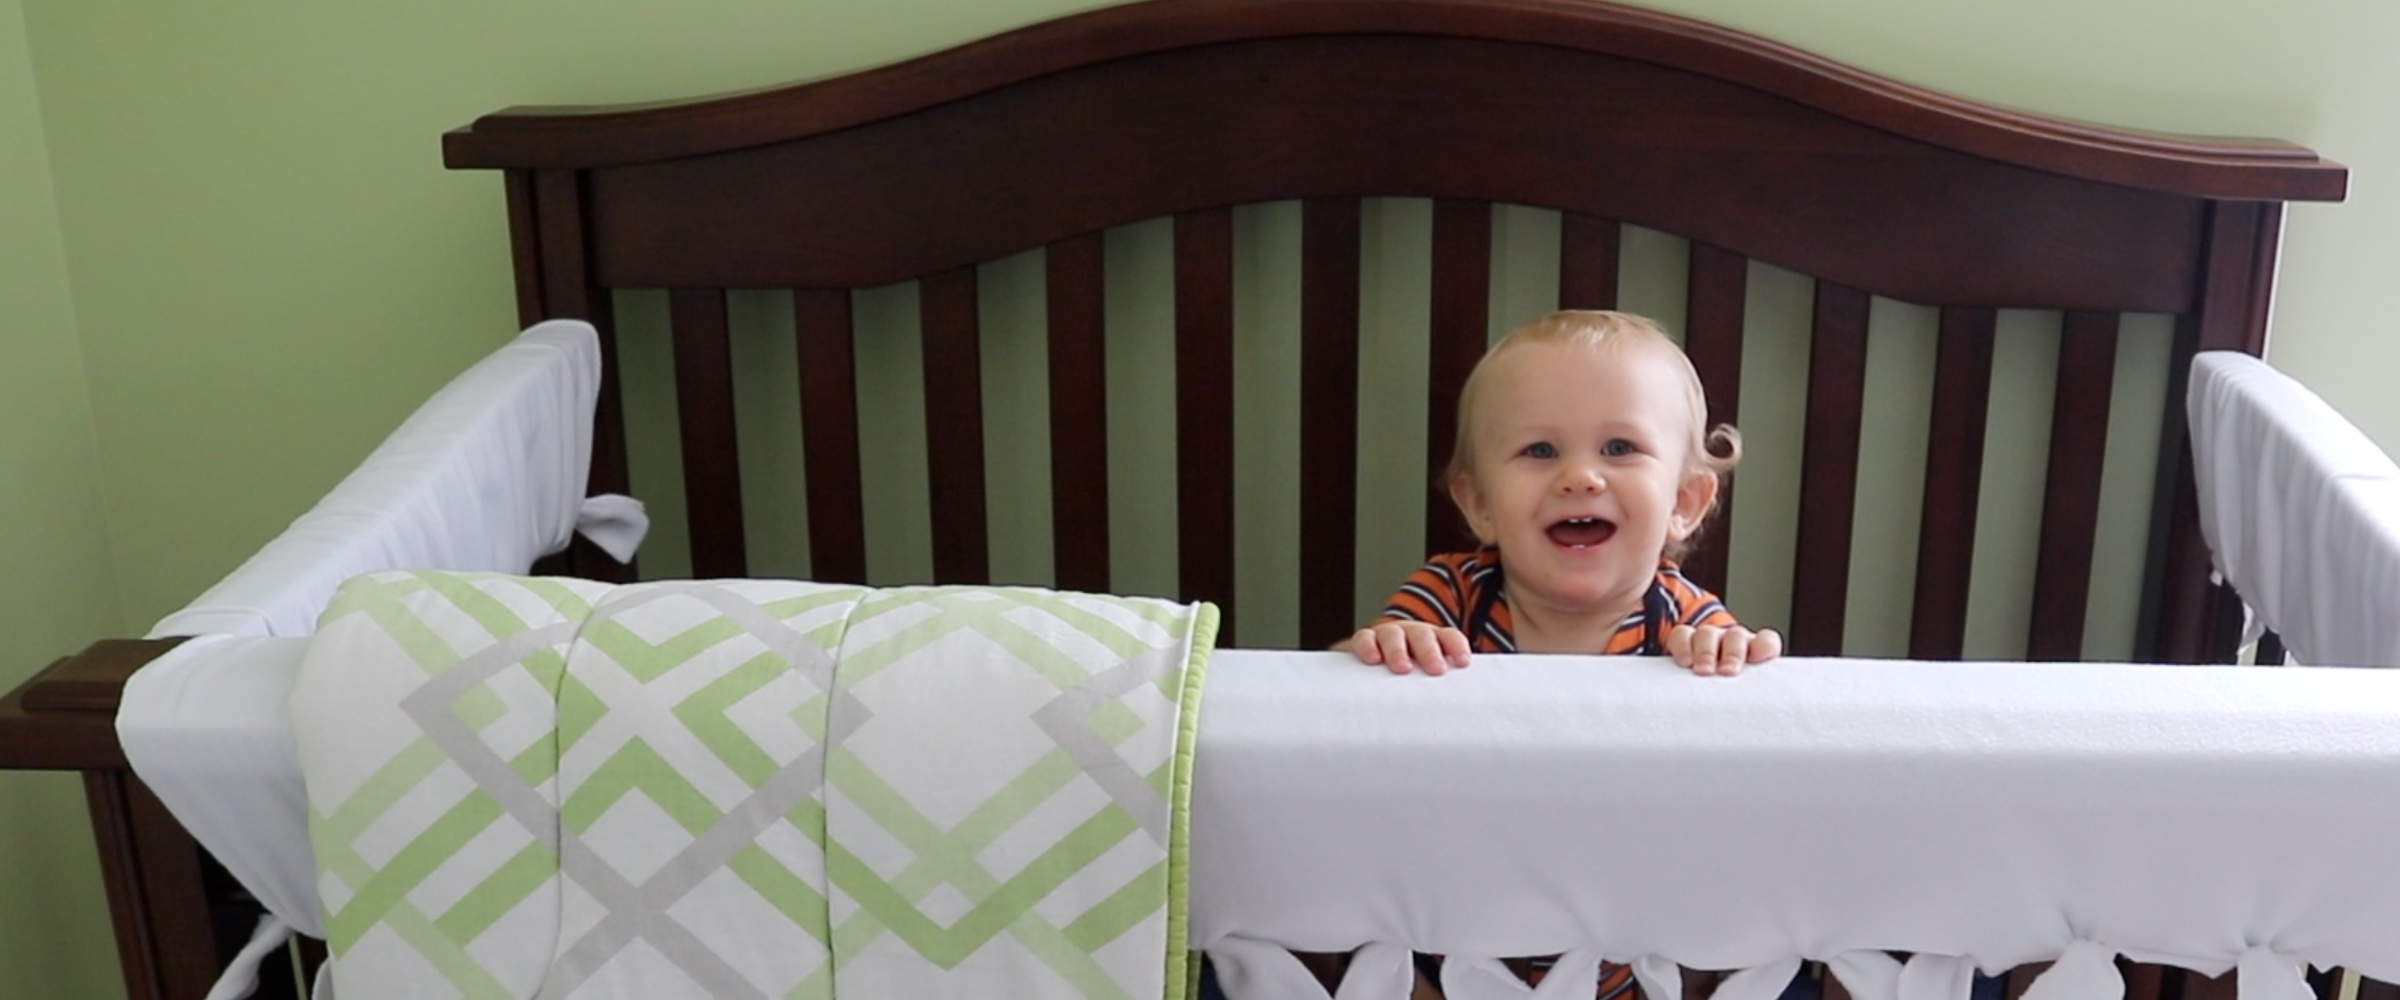 Organized With Baby How To Baby Proof Your Home Fast And